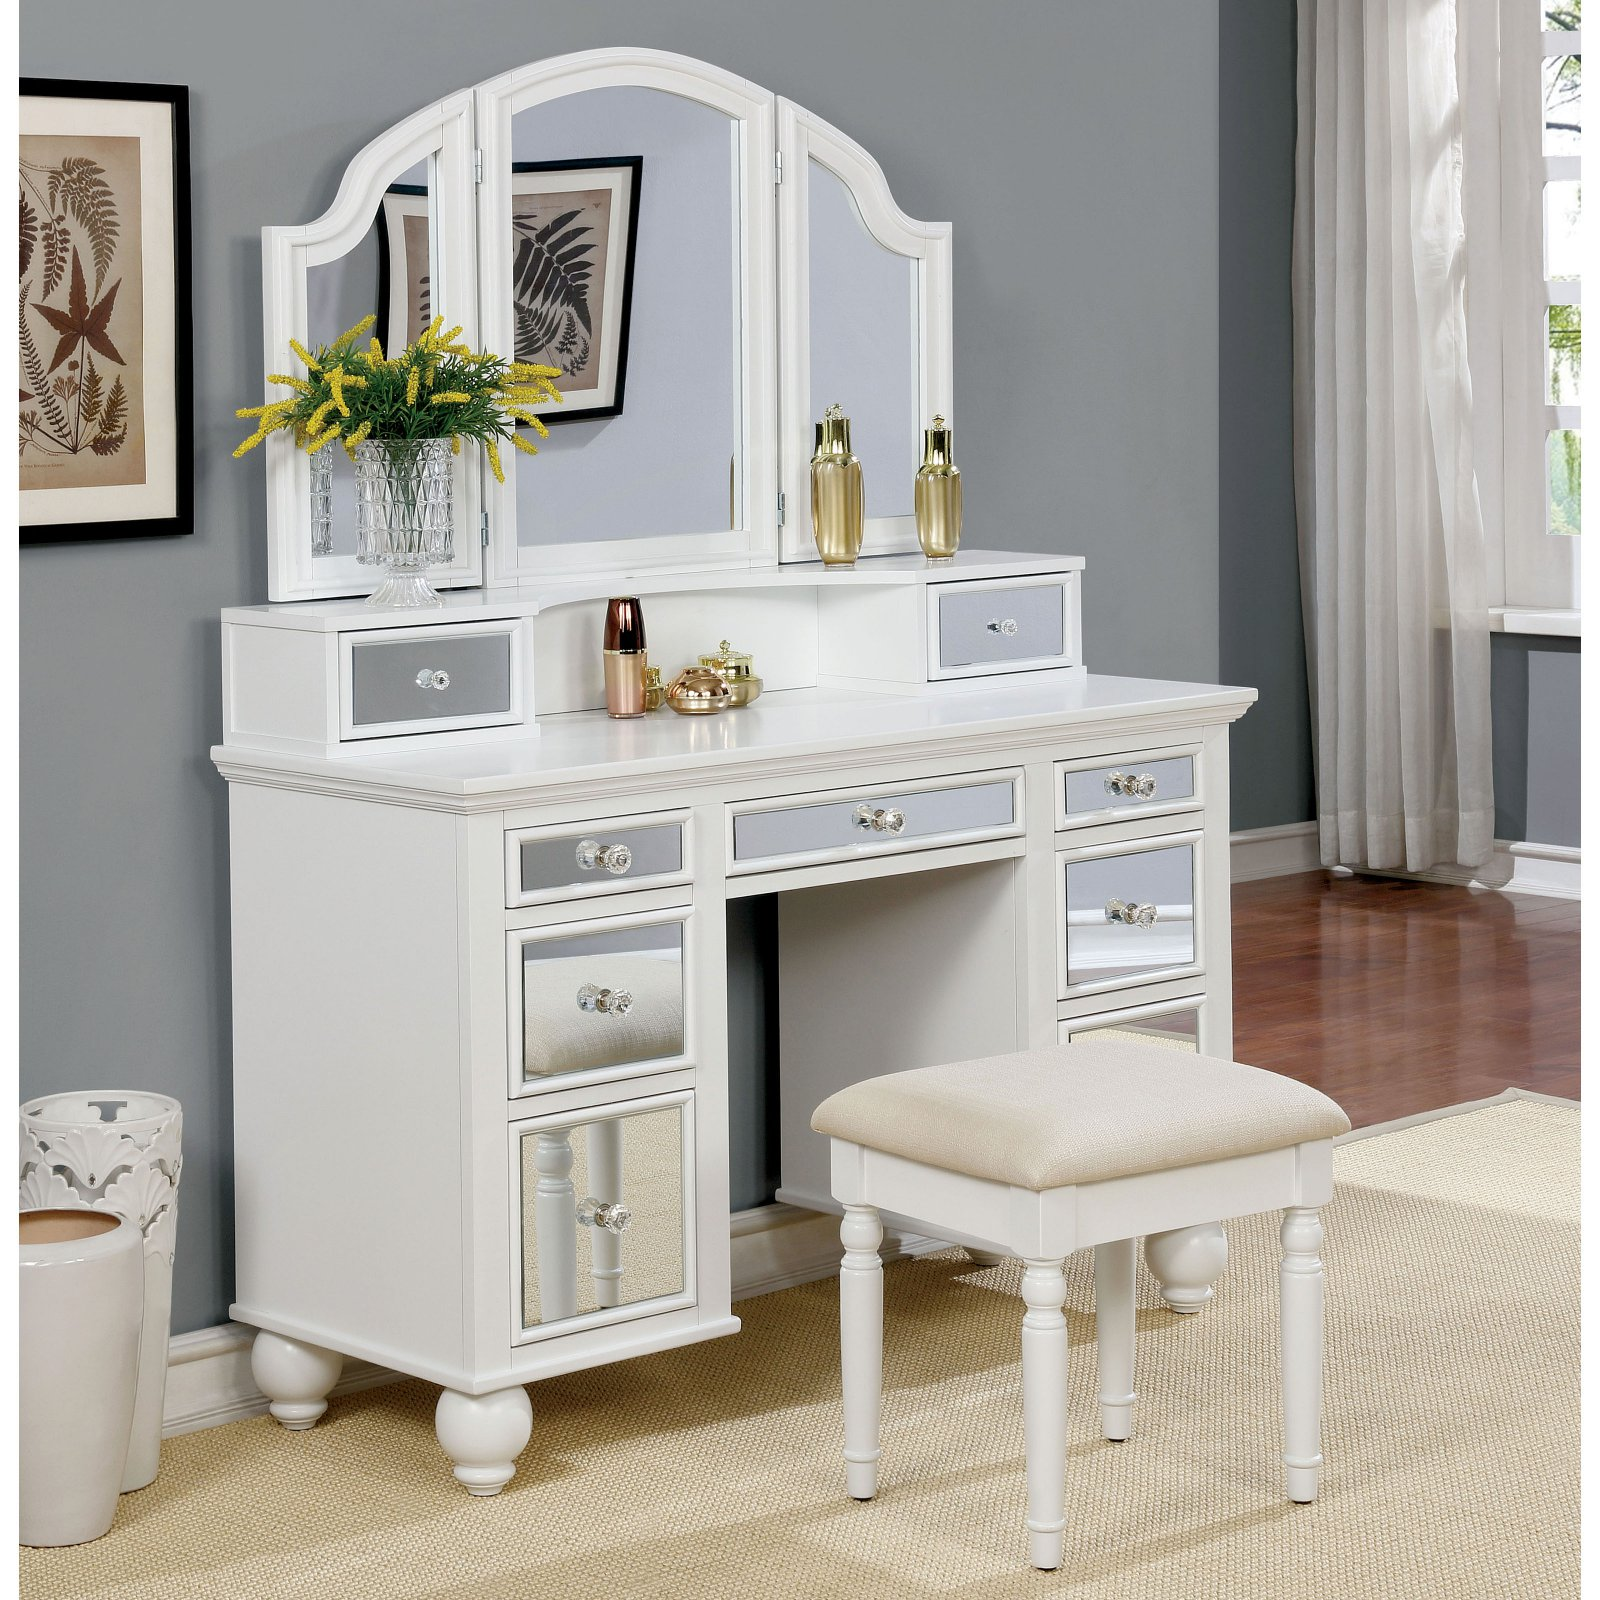 Furniture of America Aria Contemporary Style 3-Sided Mirror Vanity Set